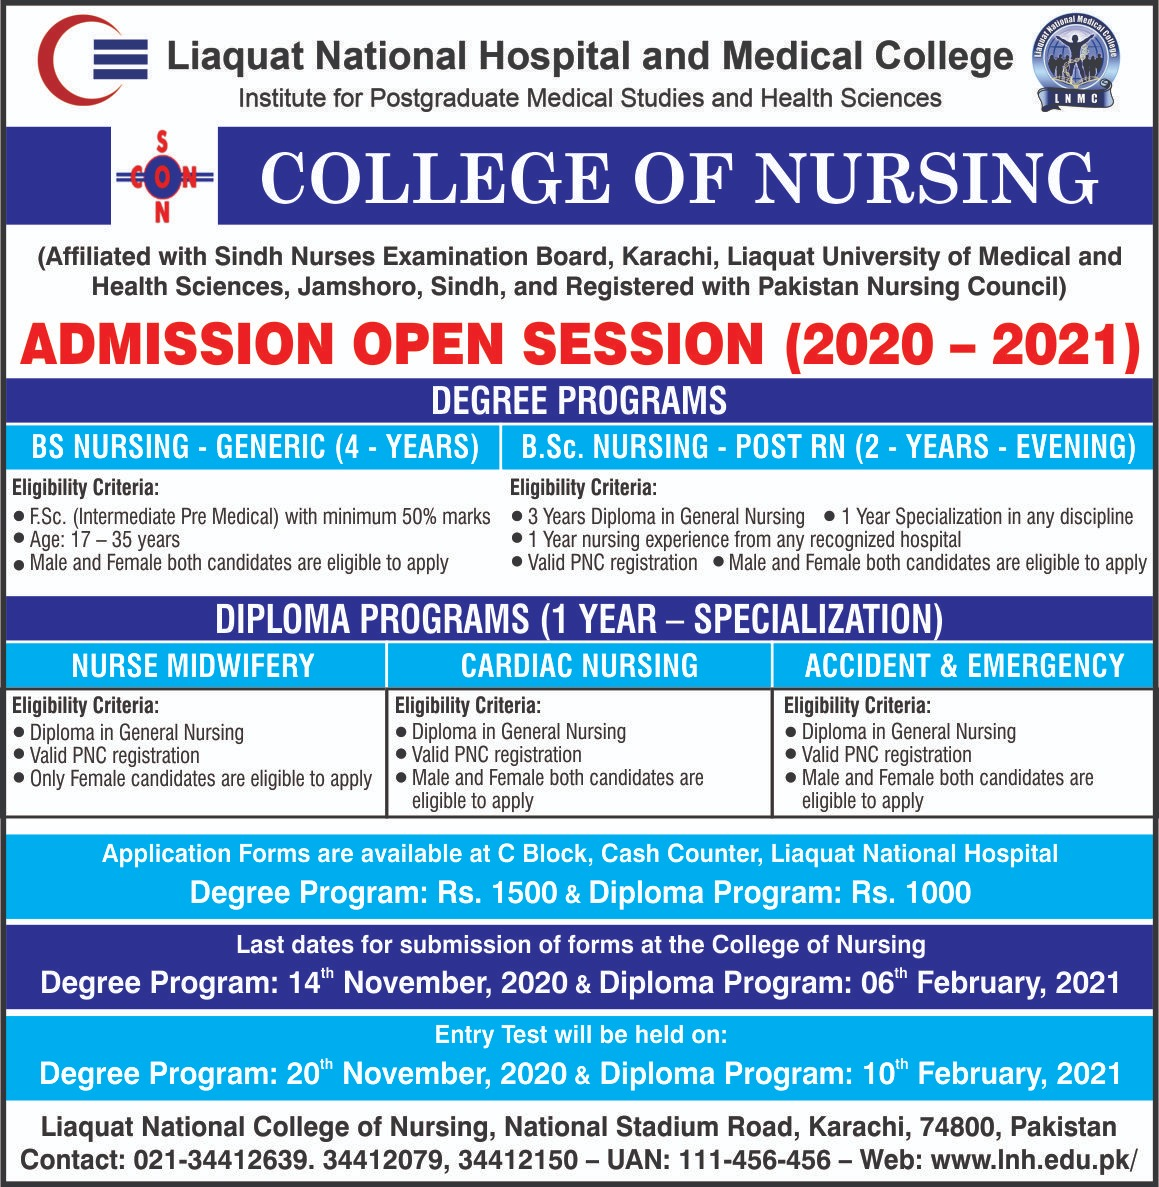 Admissions Open Session 2020-2021